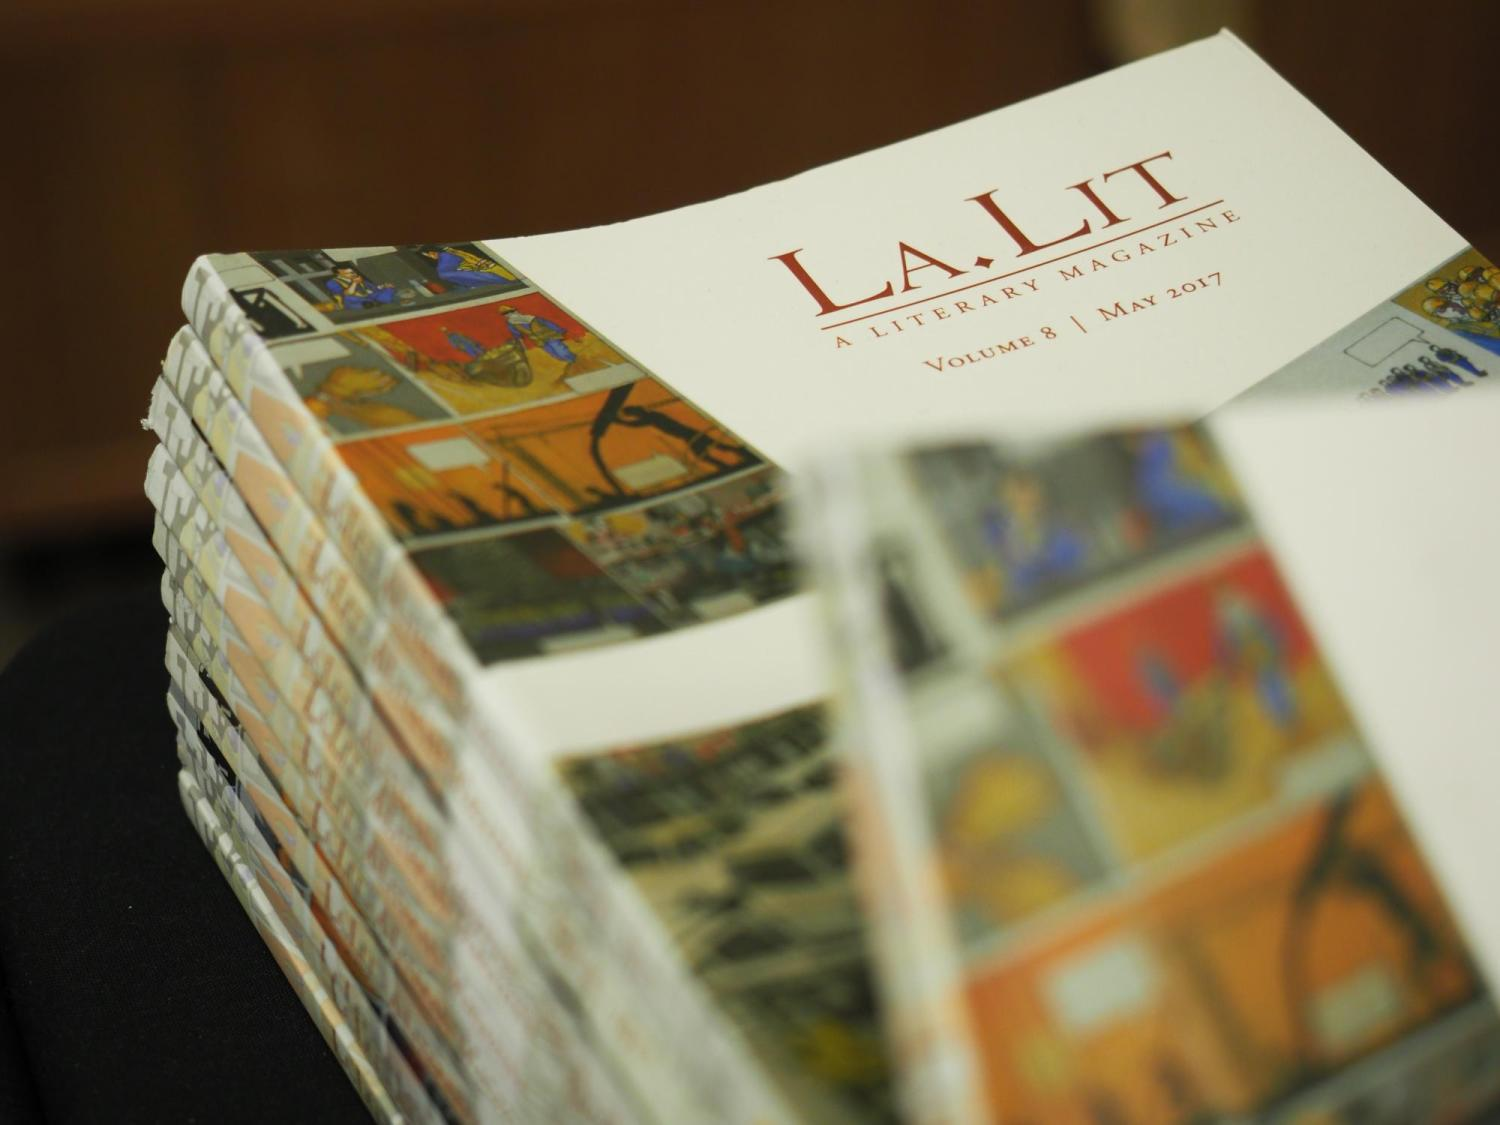 Lalit Magazine Sales at HSC V